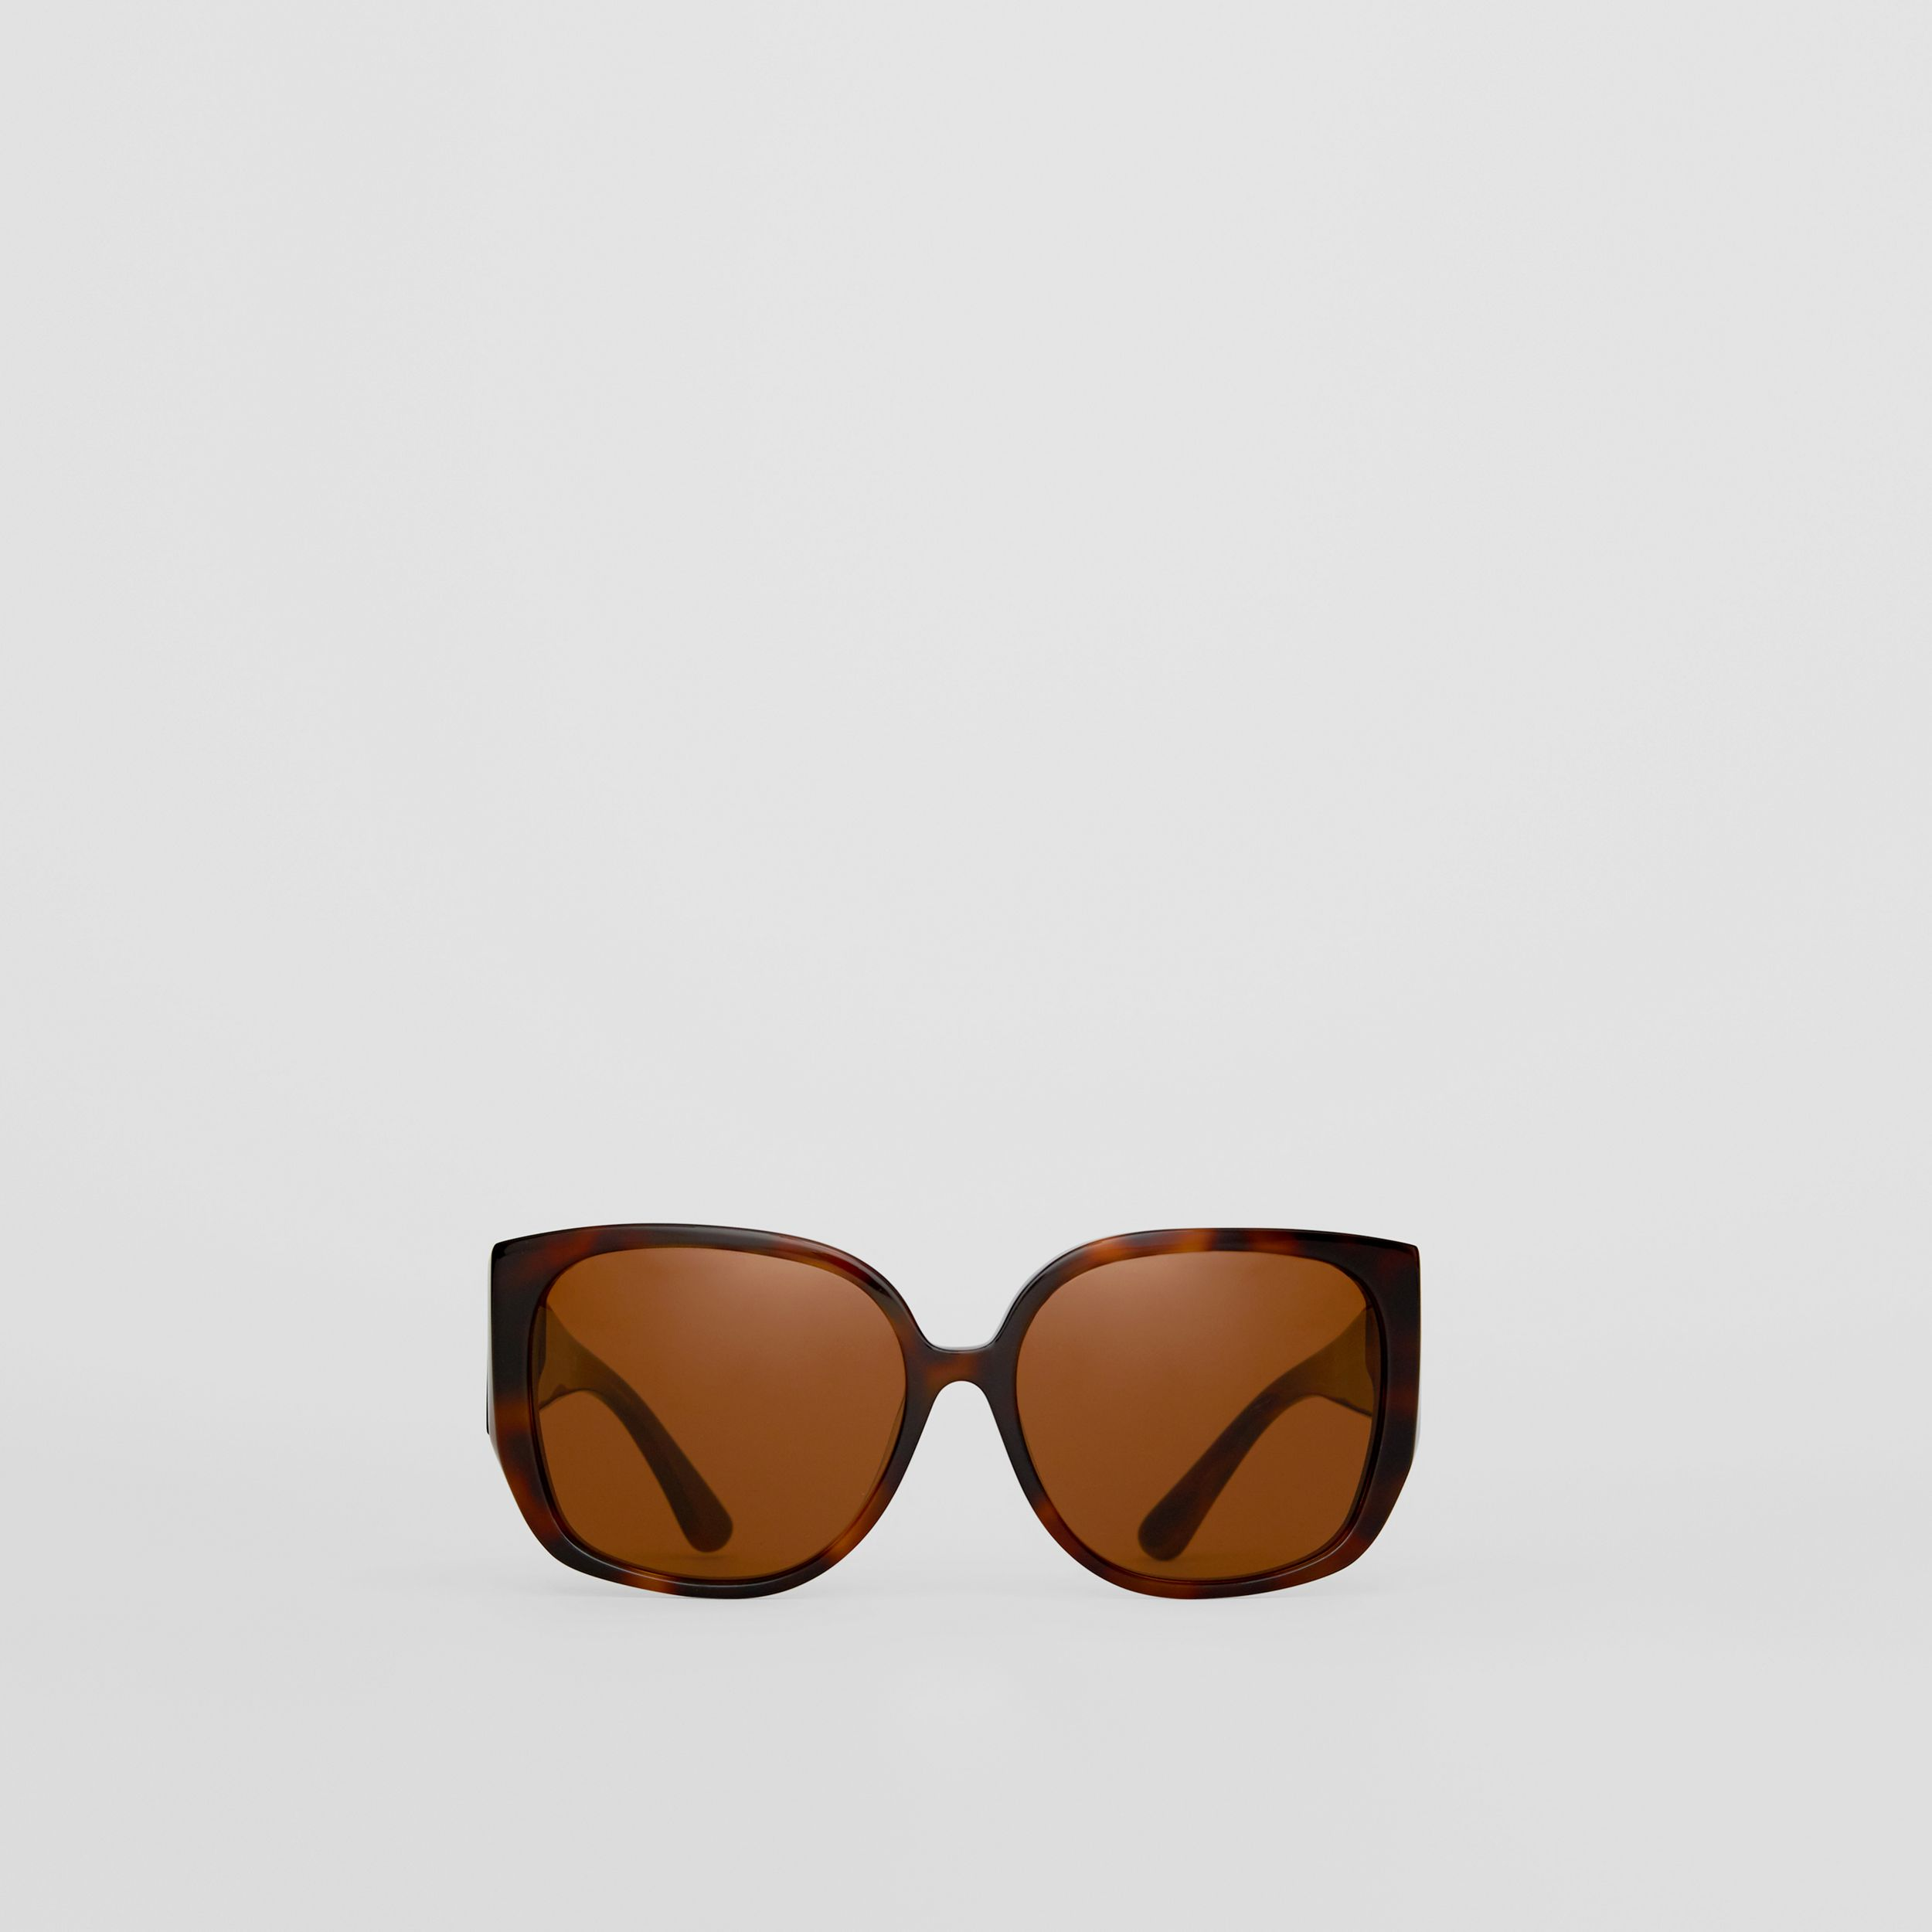 Oversized Butterfly Frame Sunglasses in Tortoiseshell - Women | Burberry Australia - 1